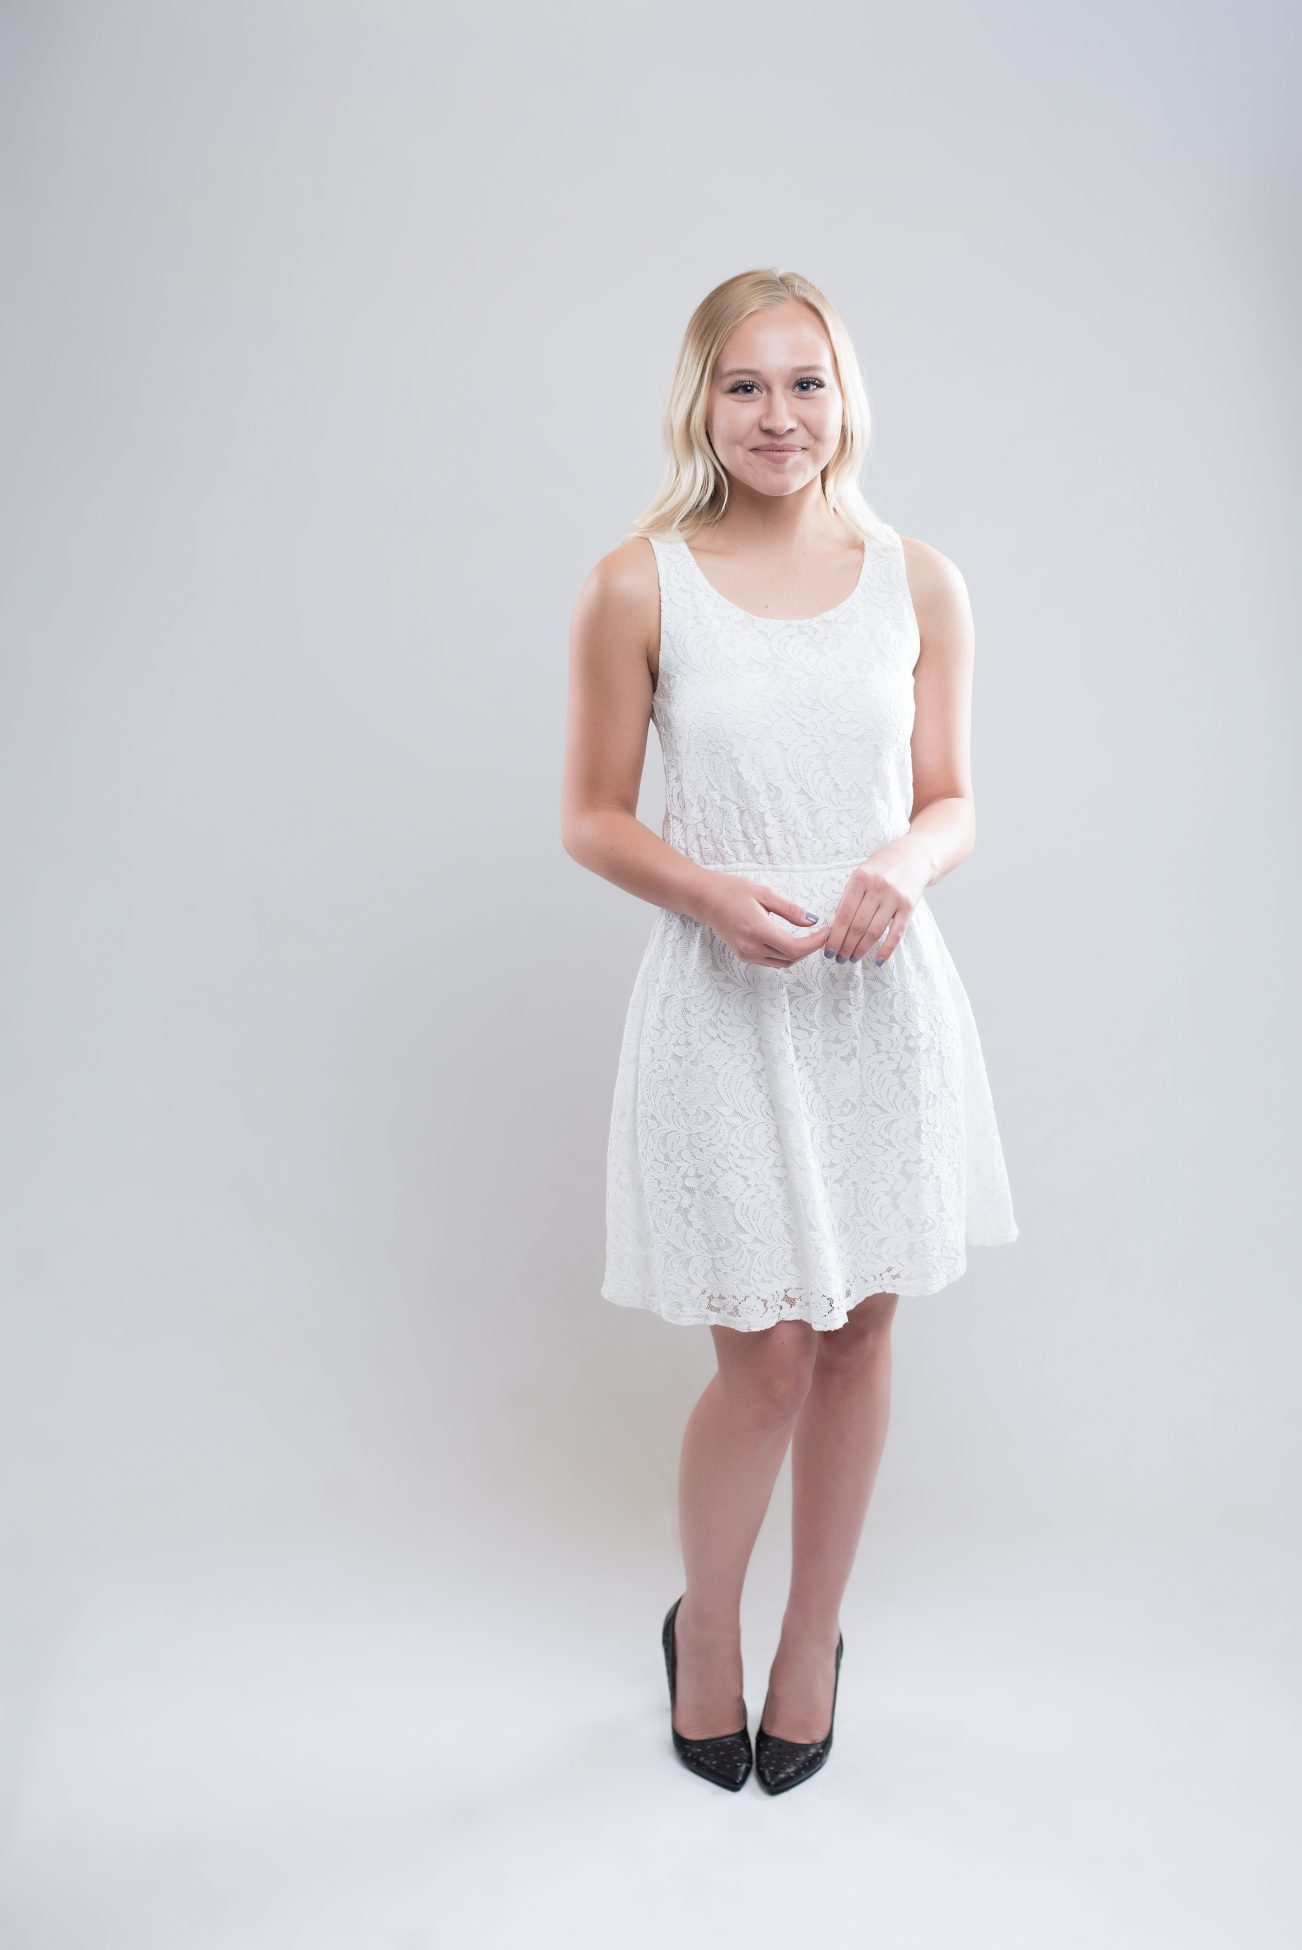 Girl in a white dress portrait by Purple Moss Photography